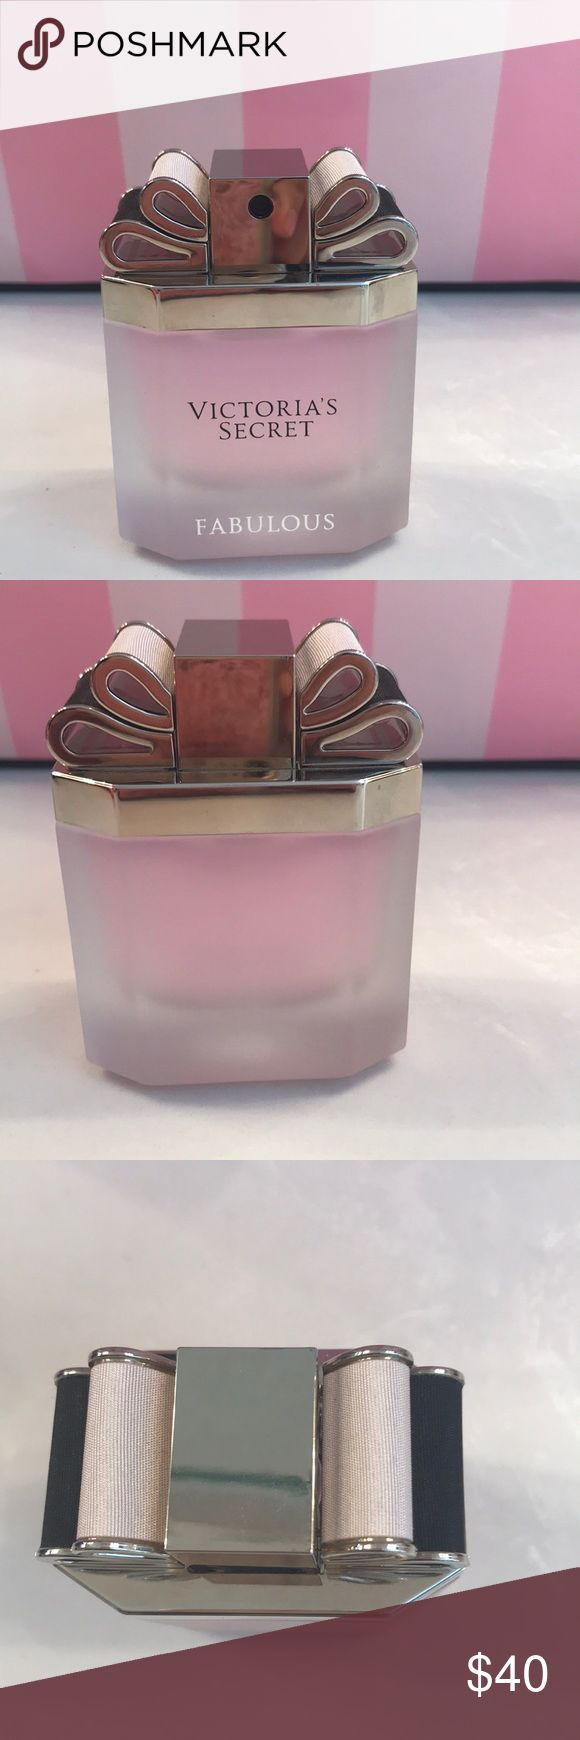 Victoria's Secret Fabulous 1.7oz Perfume EDP Victoria's Secret Fabulous 1.7oz Perfume EDP. This fragrance has been discontinued. Only used for display. Sprayed one time. No box. No trades. Victoria's Secret Other